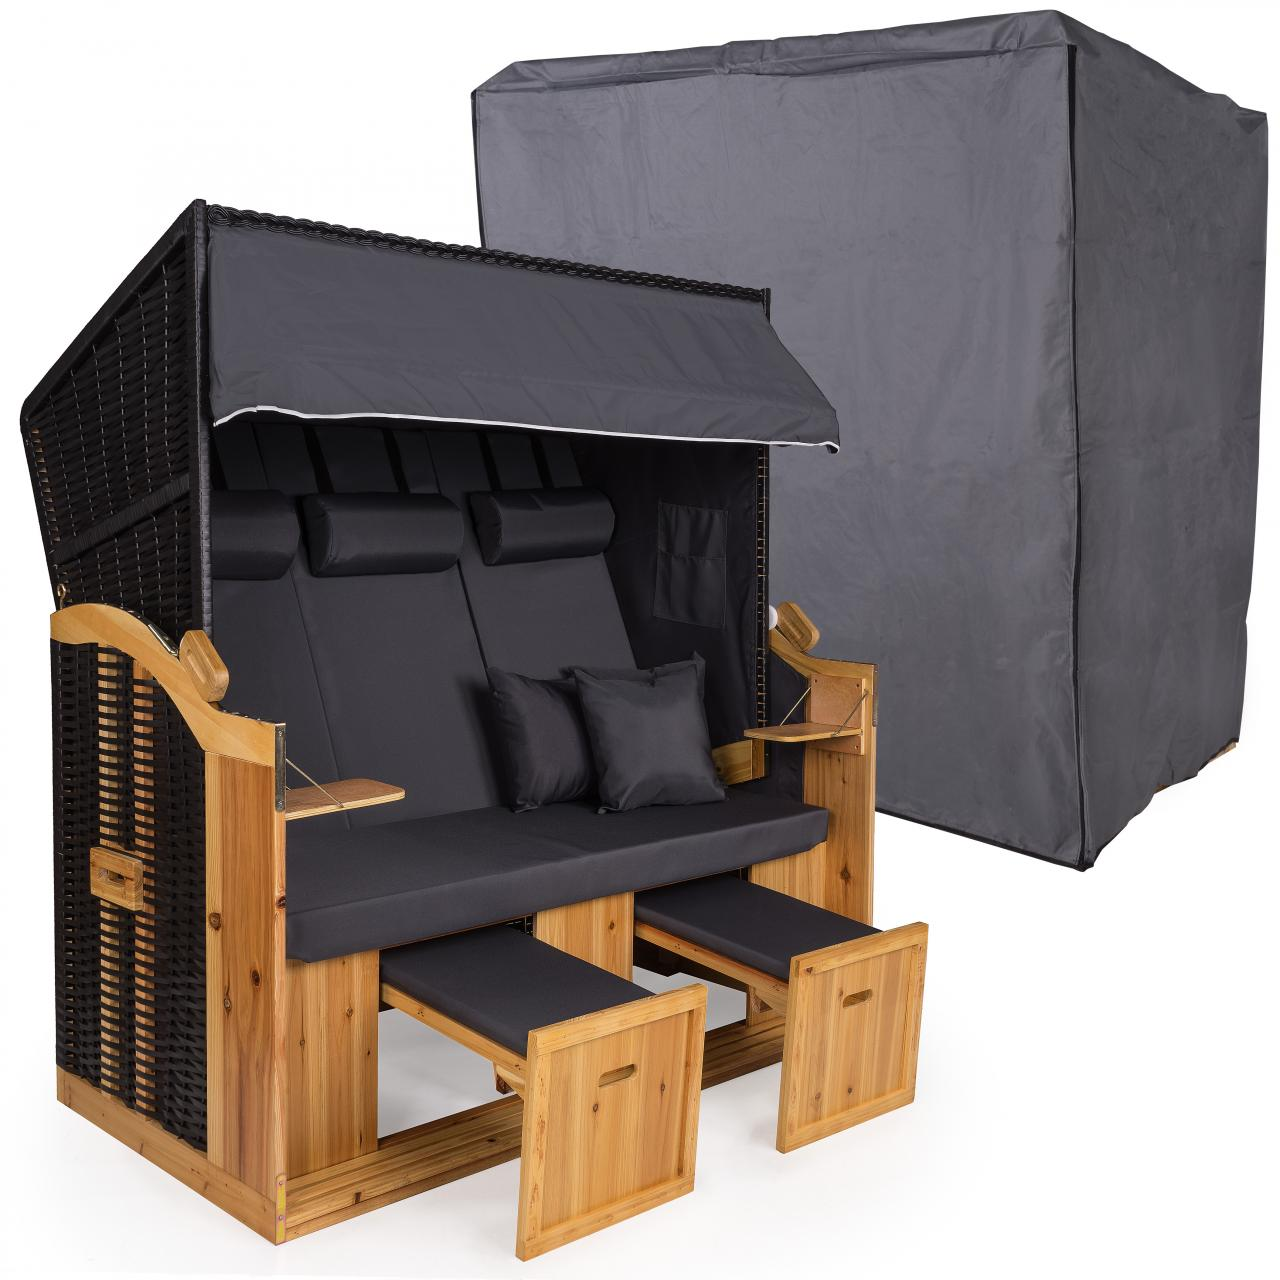 abdeckhaube f r strandkorb bc160 rugbyclubeemland. Black Bedroom Furniture Sets. Home Design Ideas